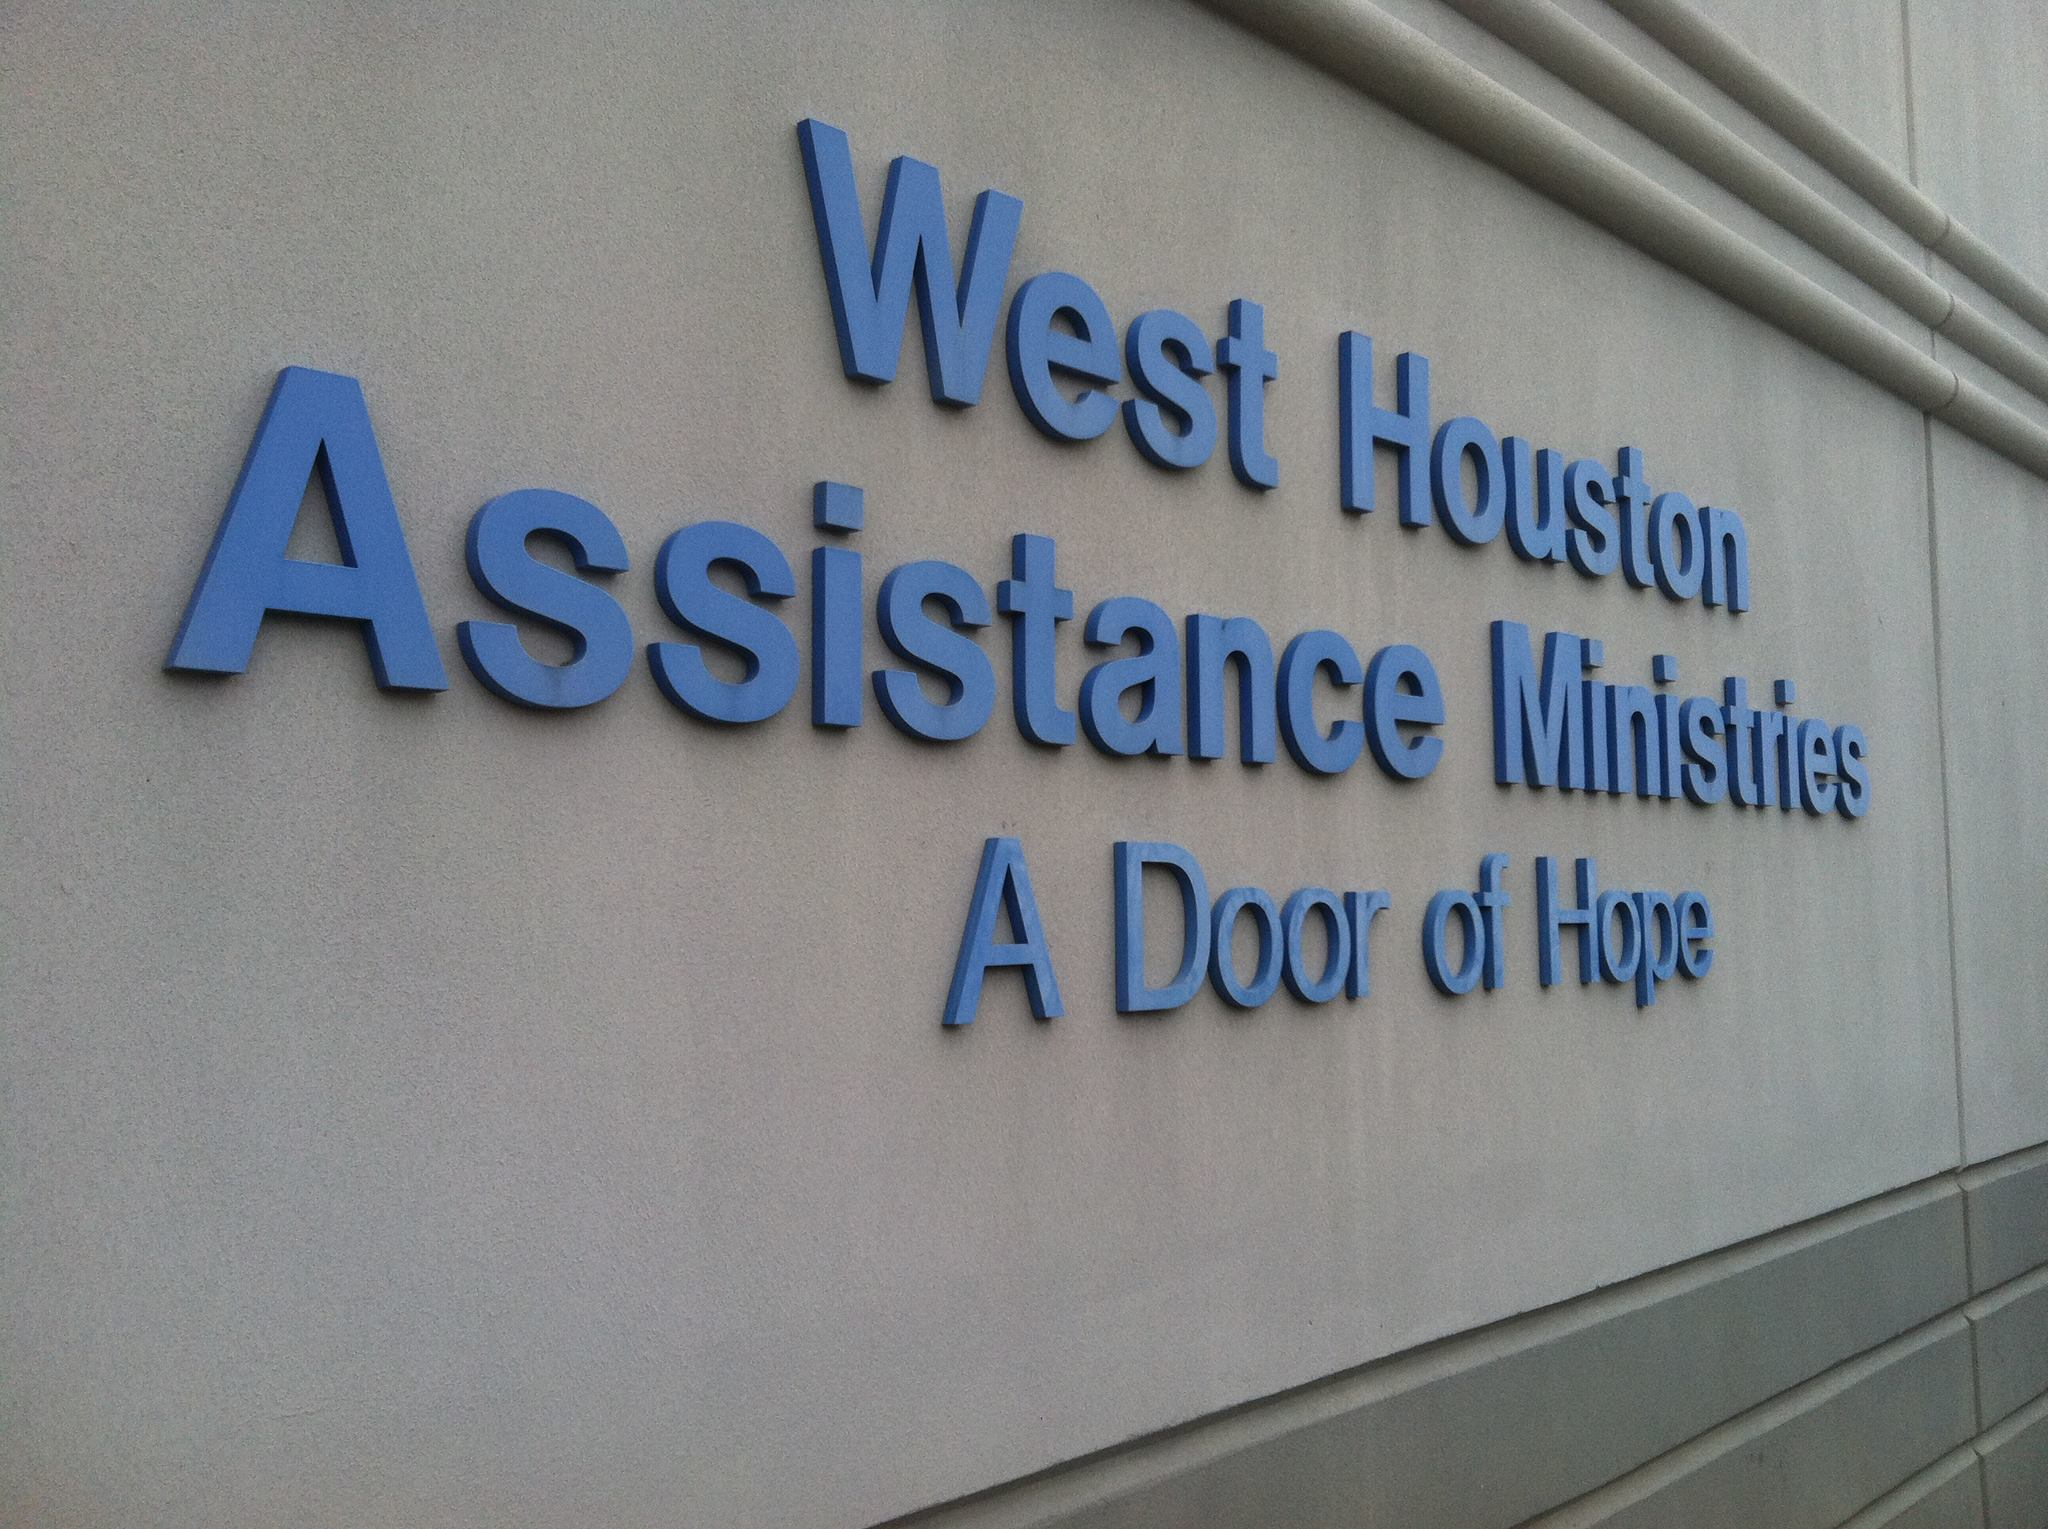 West Houston Assistance Ministries Food Pantry